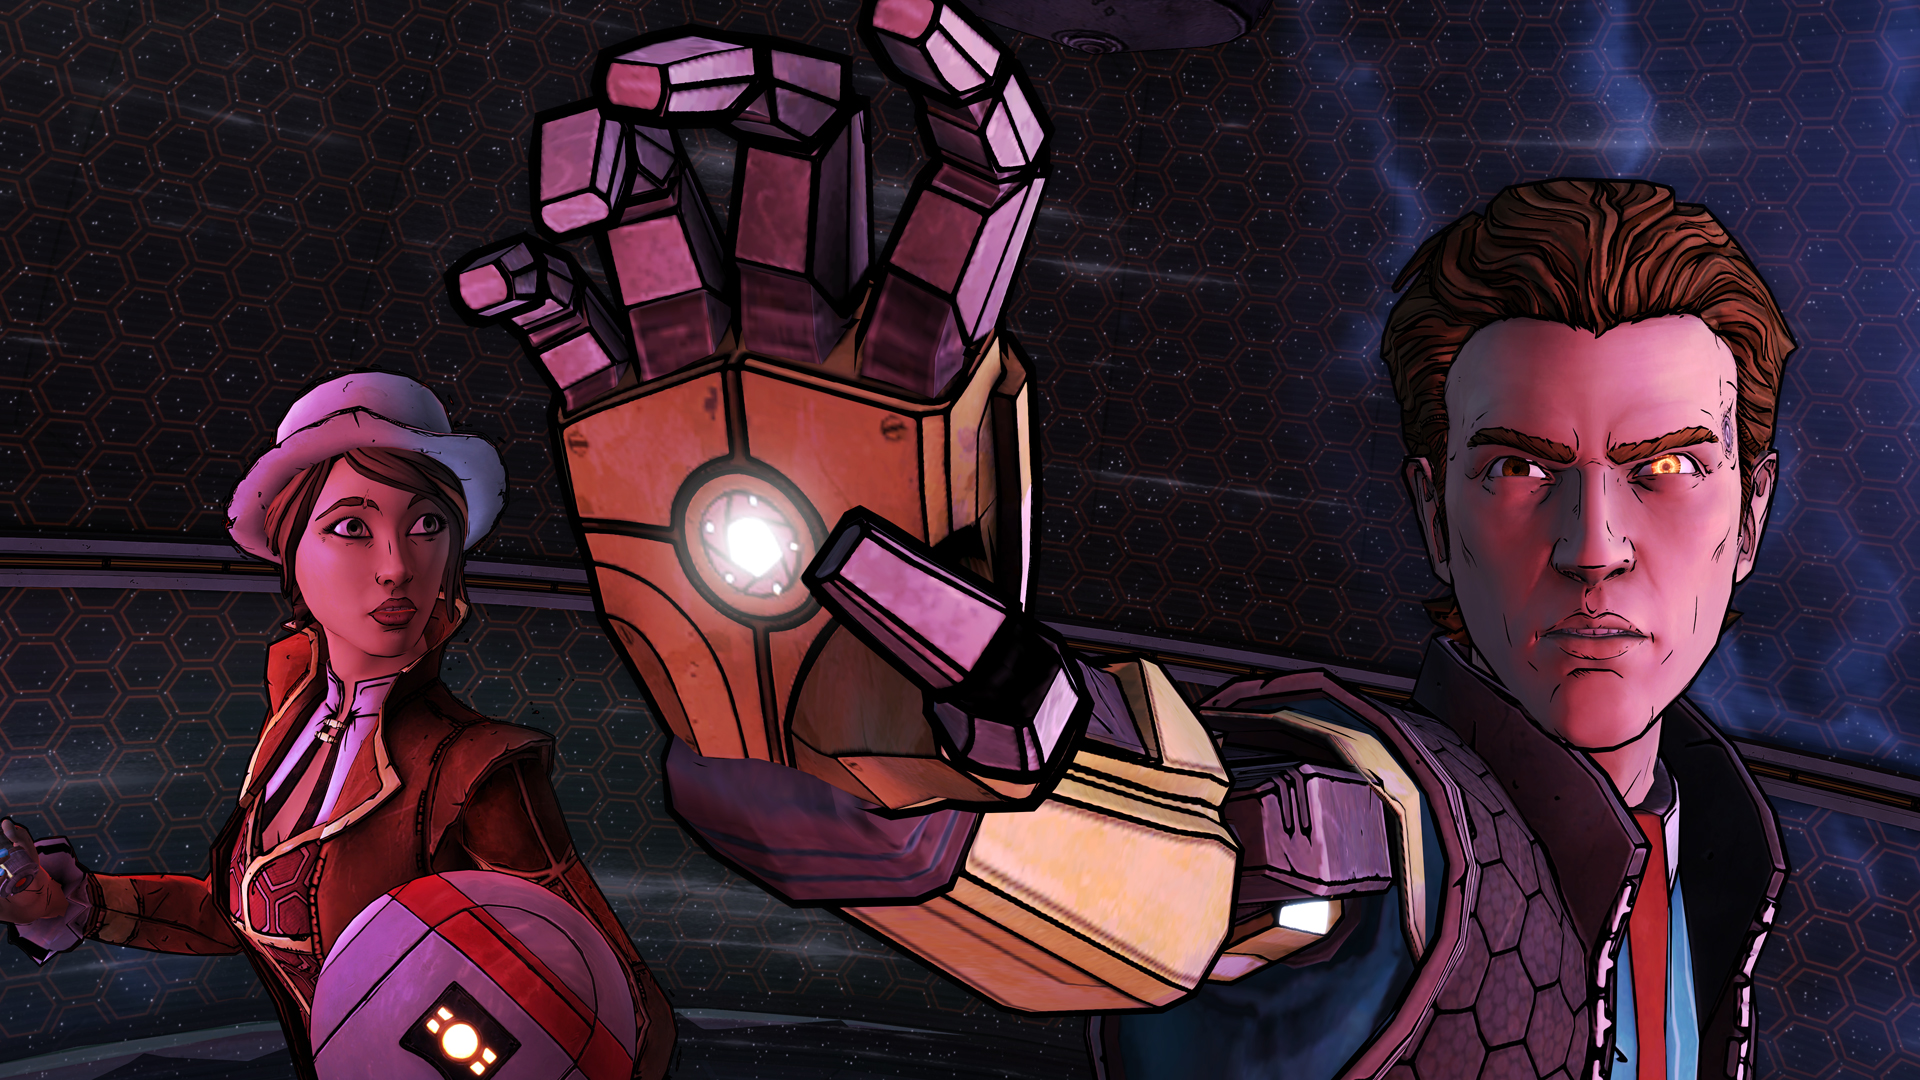 Tales from the Borderlands Episode 3: Catch A Ride Review